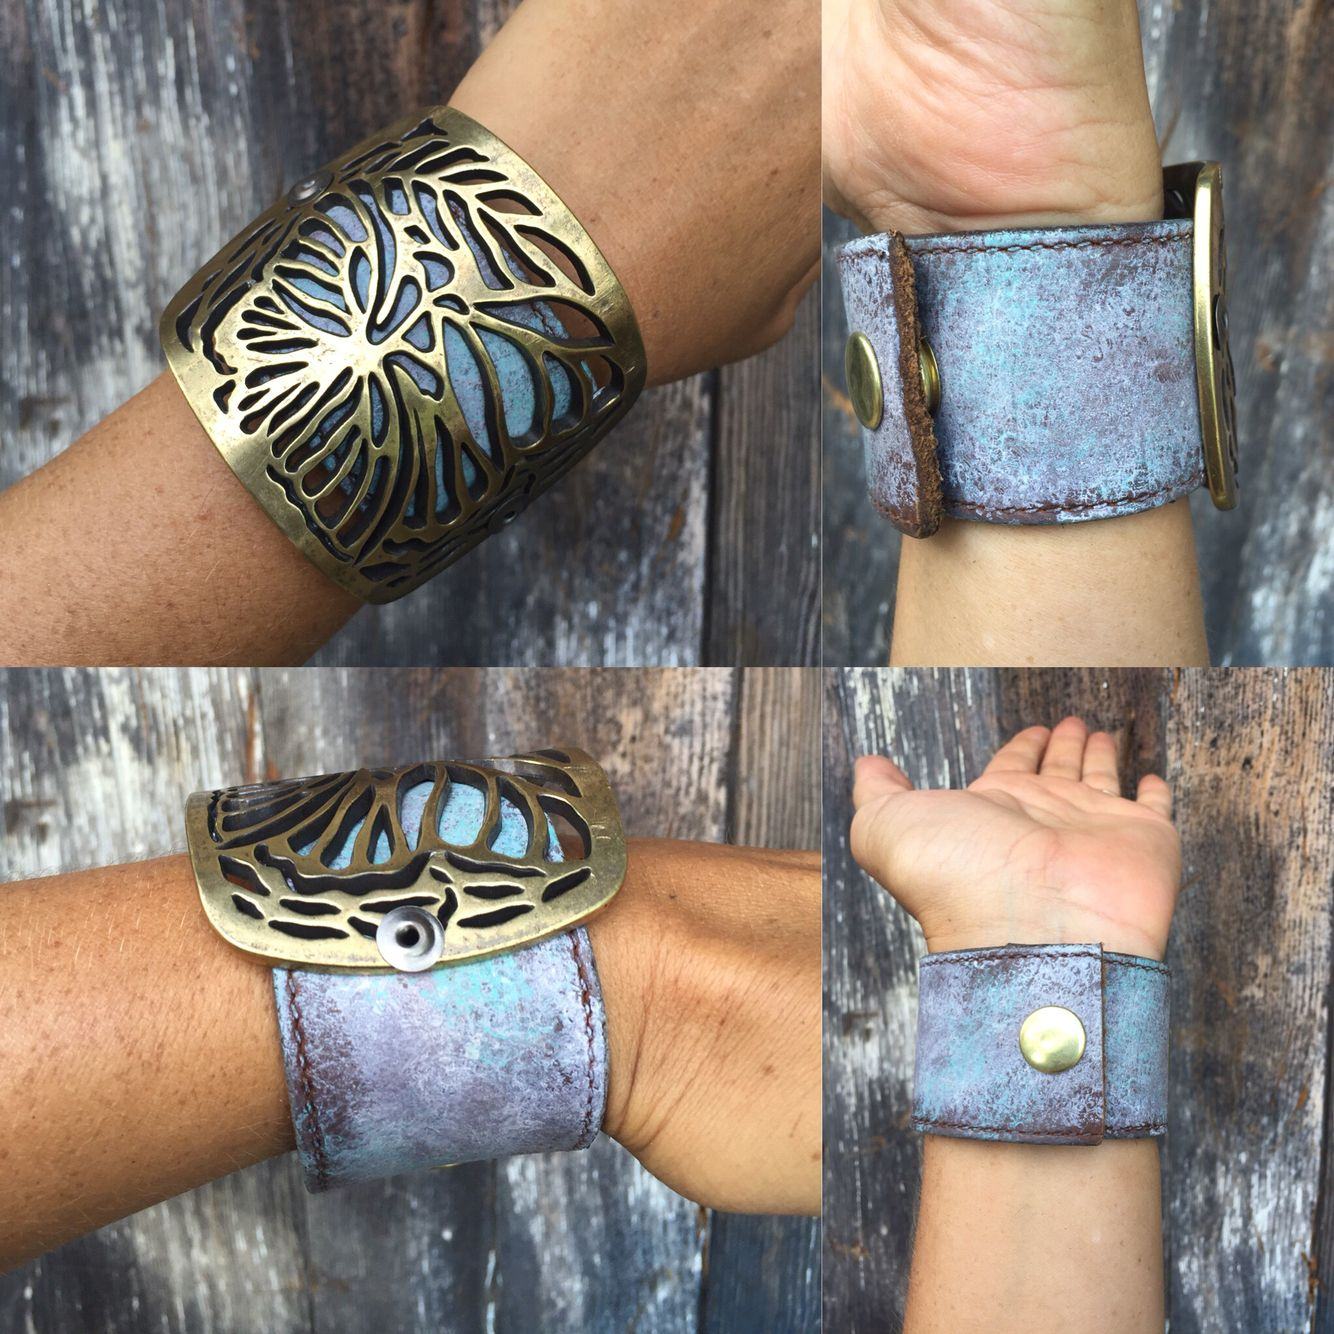 Painted belt cuff with repurposed belt buckle. Super cool and unique.  #SteelShopDesigns #cuff #beltcuff #leathercuff #cuffbracelet #ooak #ooakjewelry